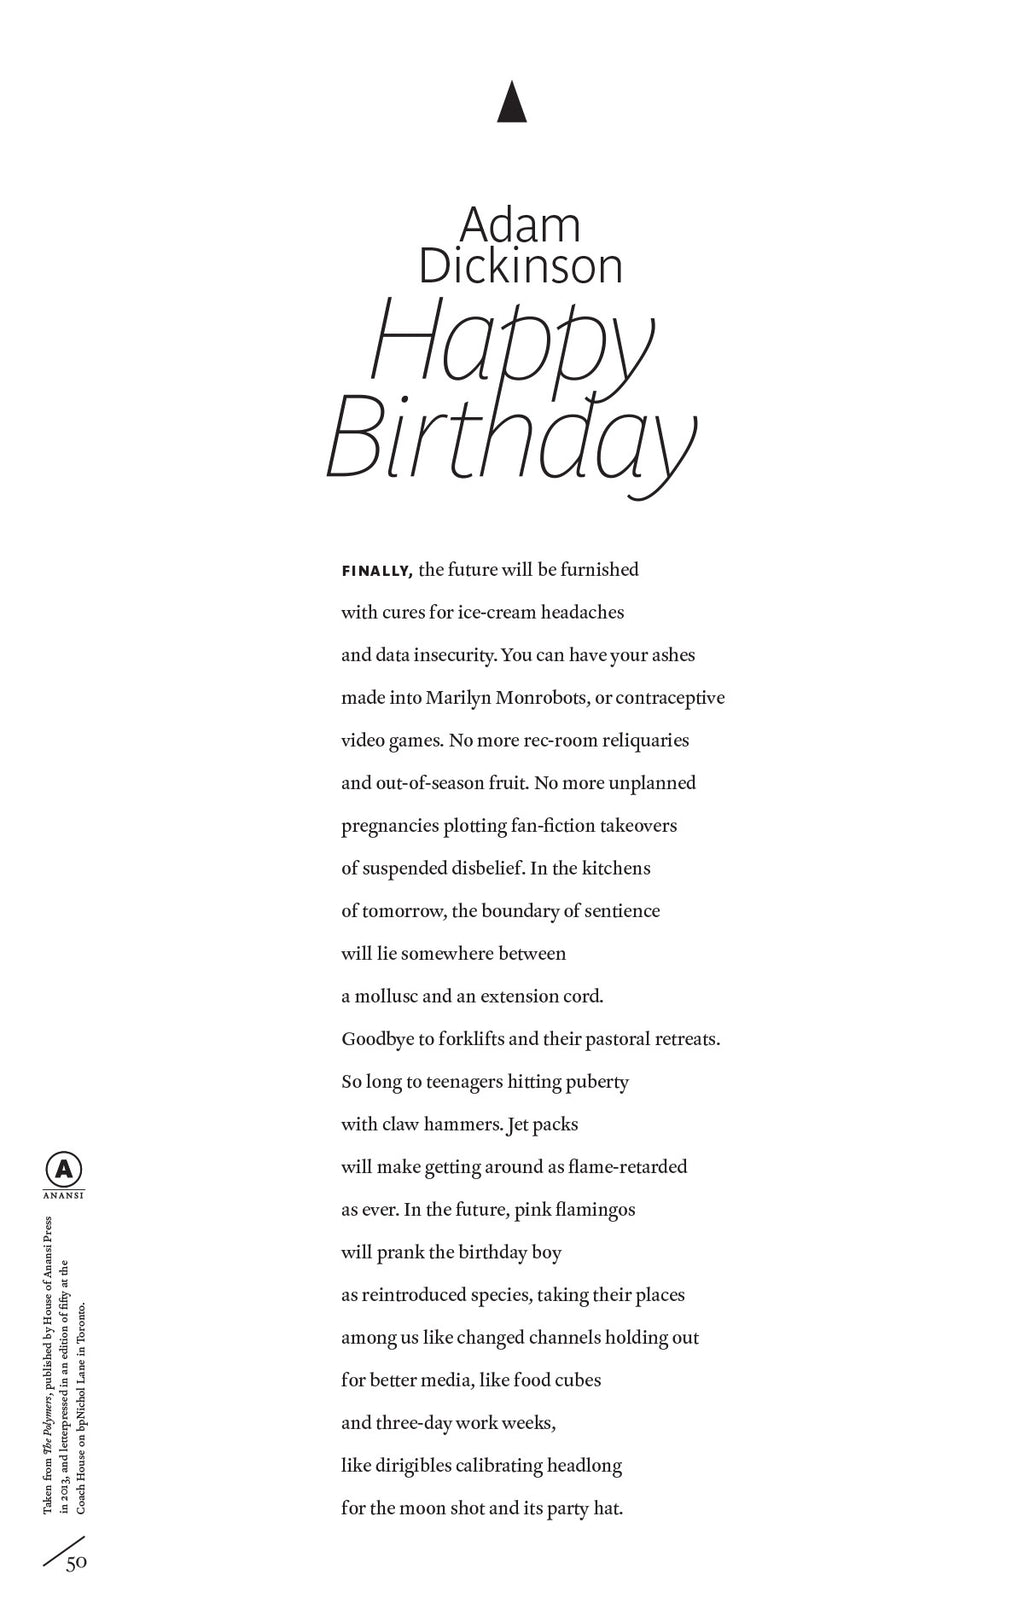 Happy Birthday by Adam Dickinson